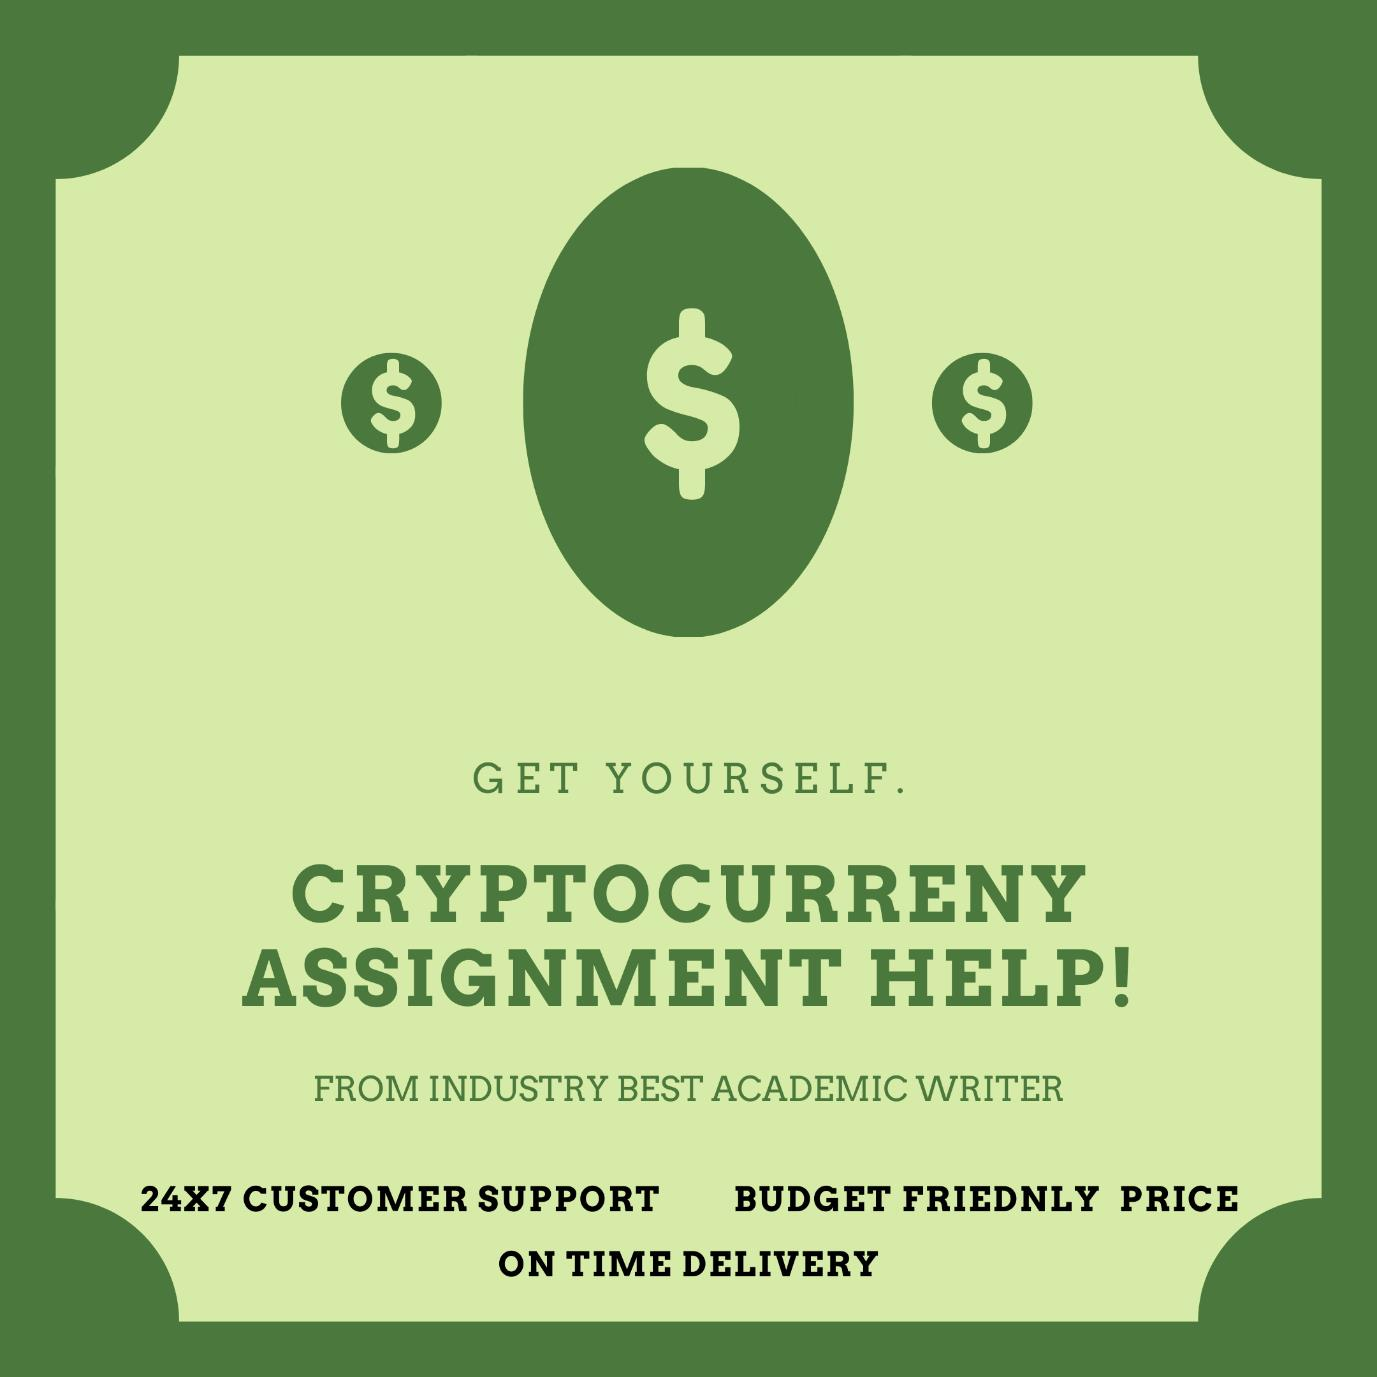 cryptocurrency assignment help